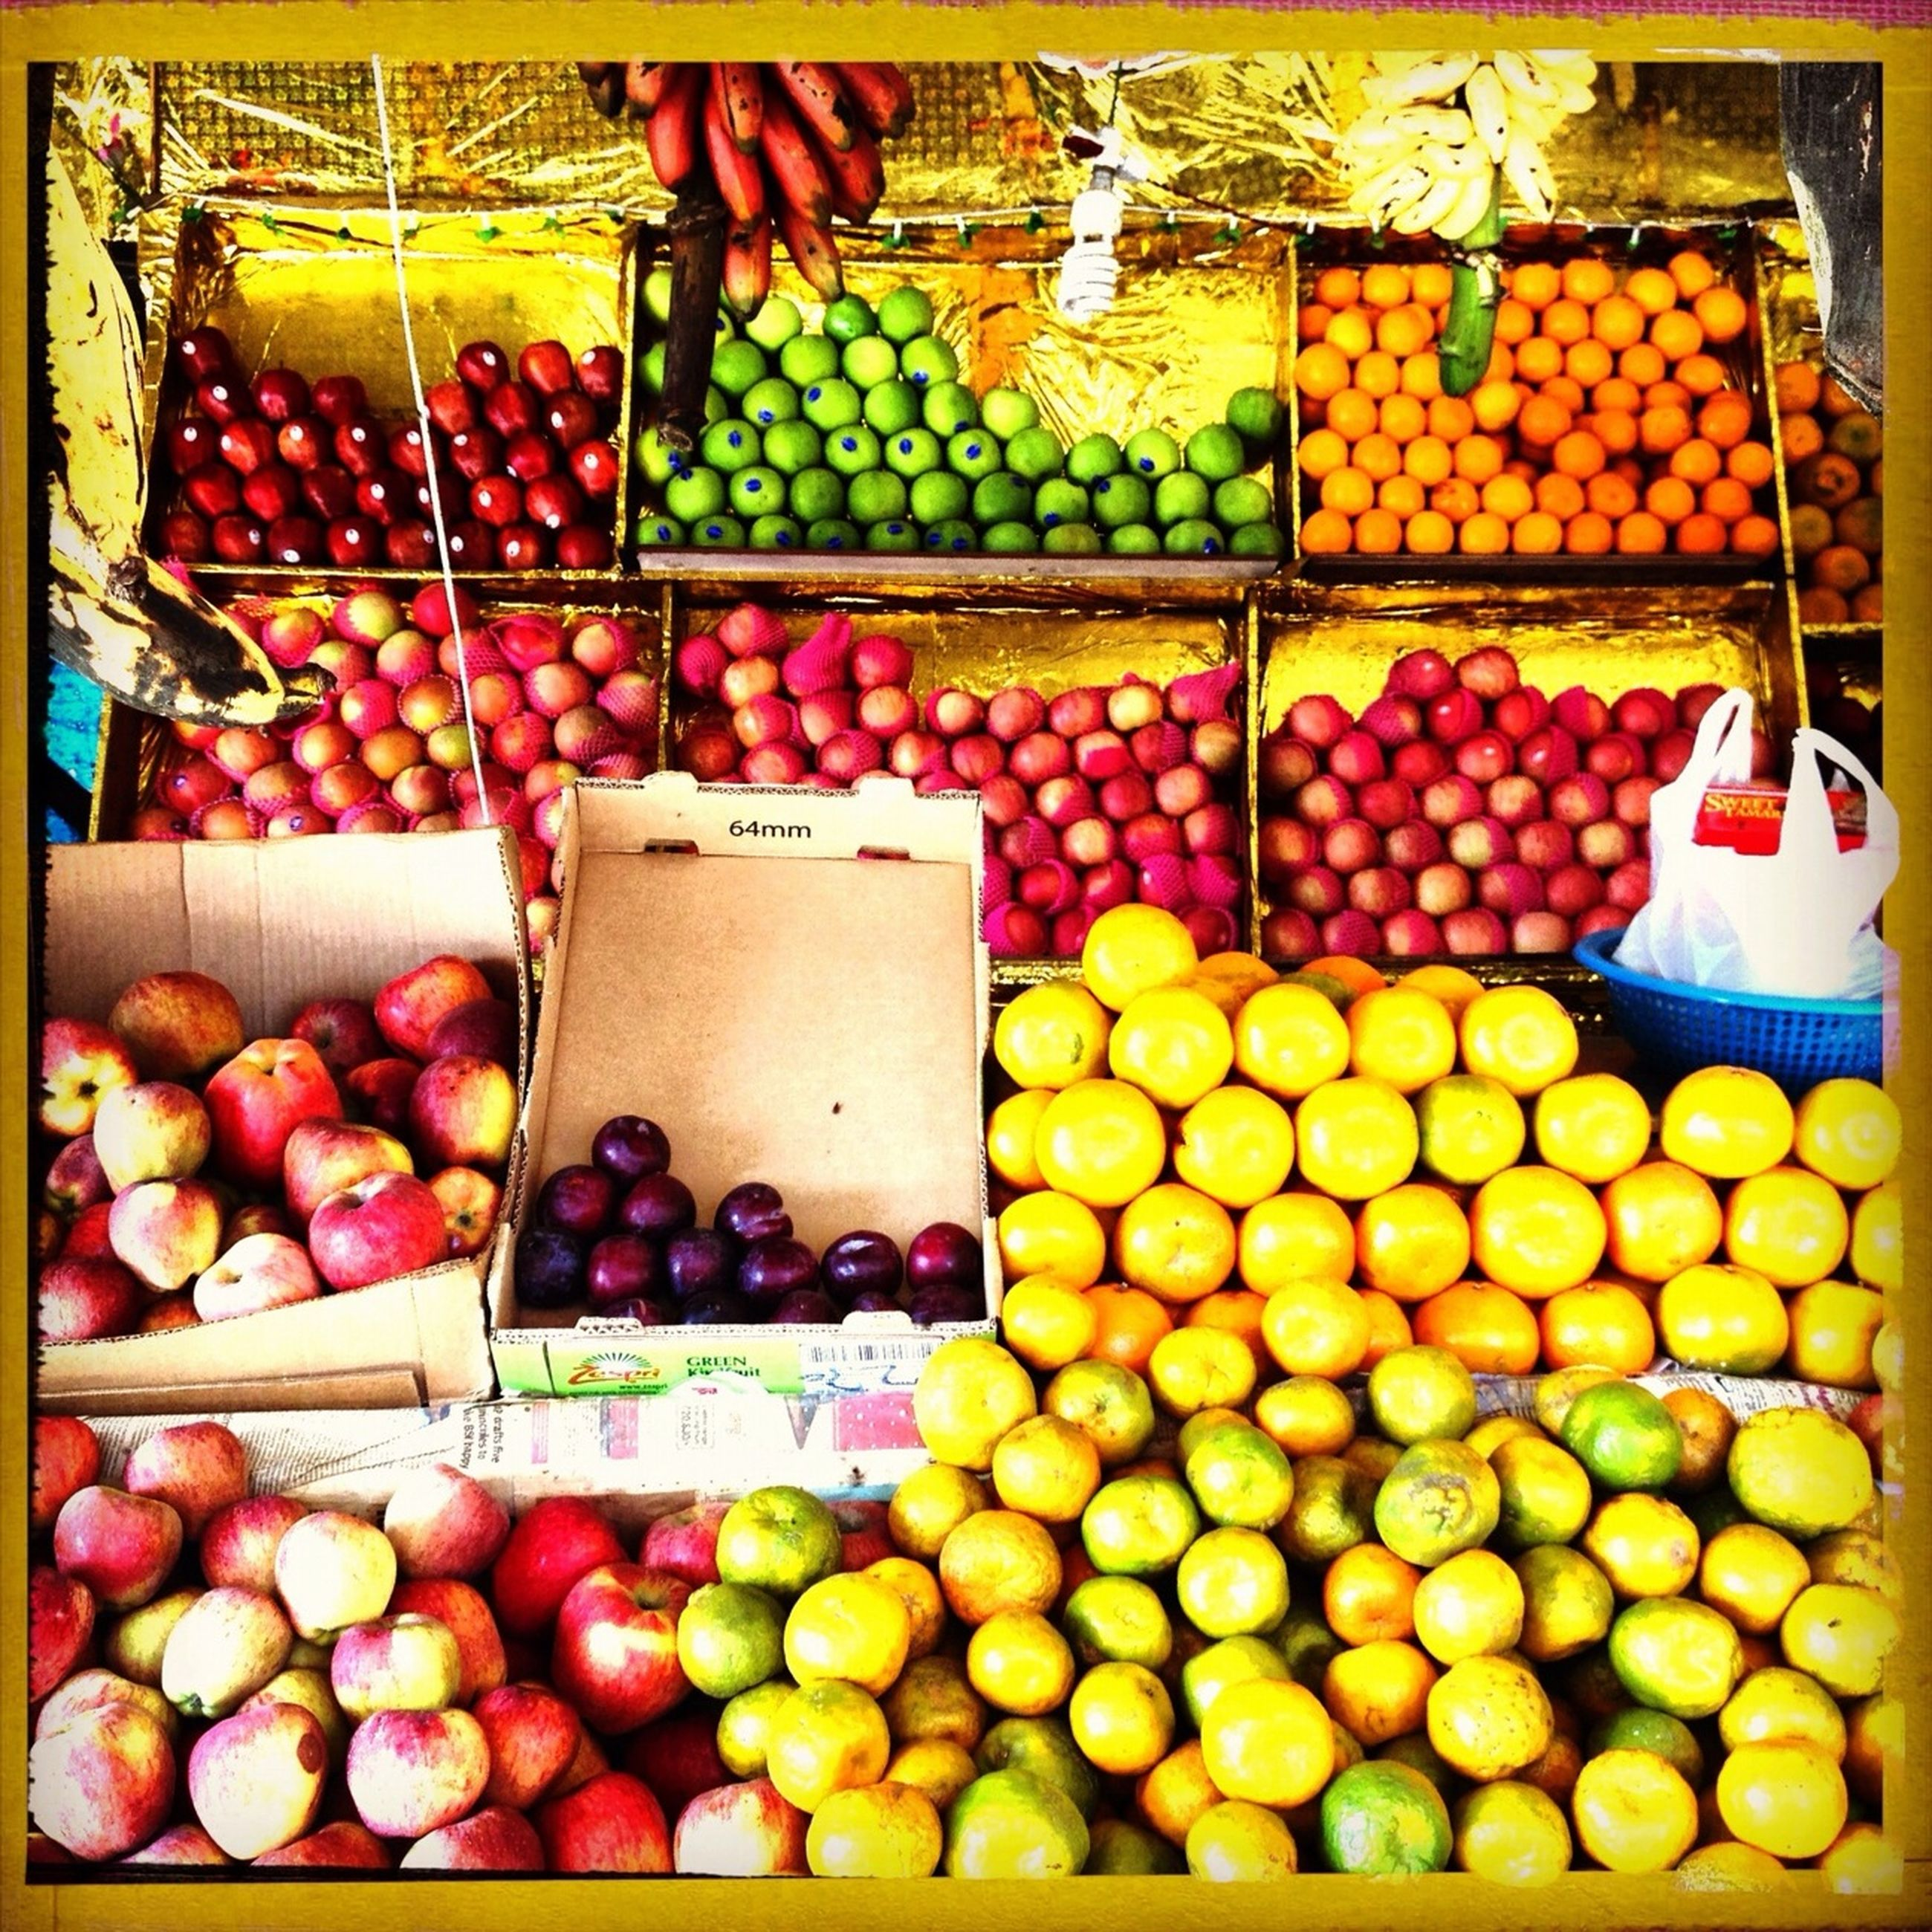 food and drink, for sale, retail, food, large group of objects, market stall, market, abundance, fruit, healthy eating, freshness, choice, variation, display, sale, transfer print, still life, indoors, consumerism, arrangement